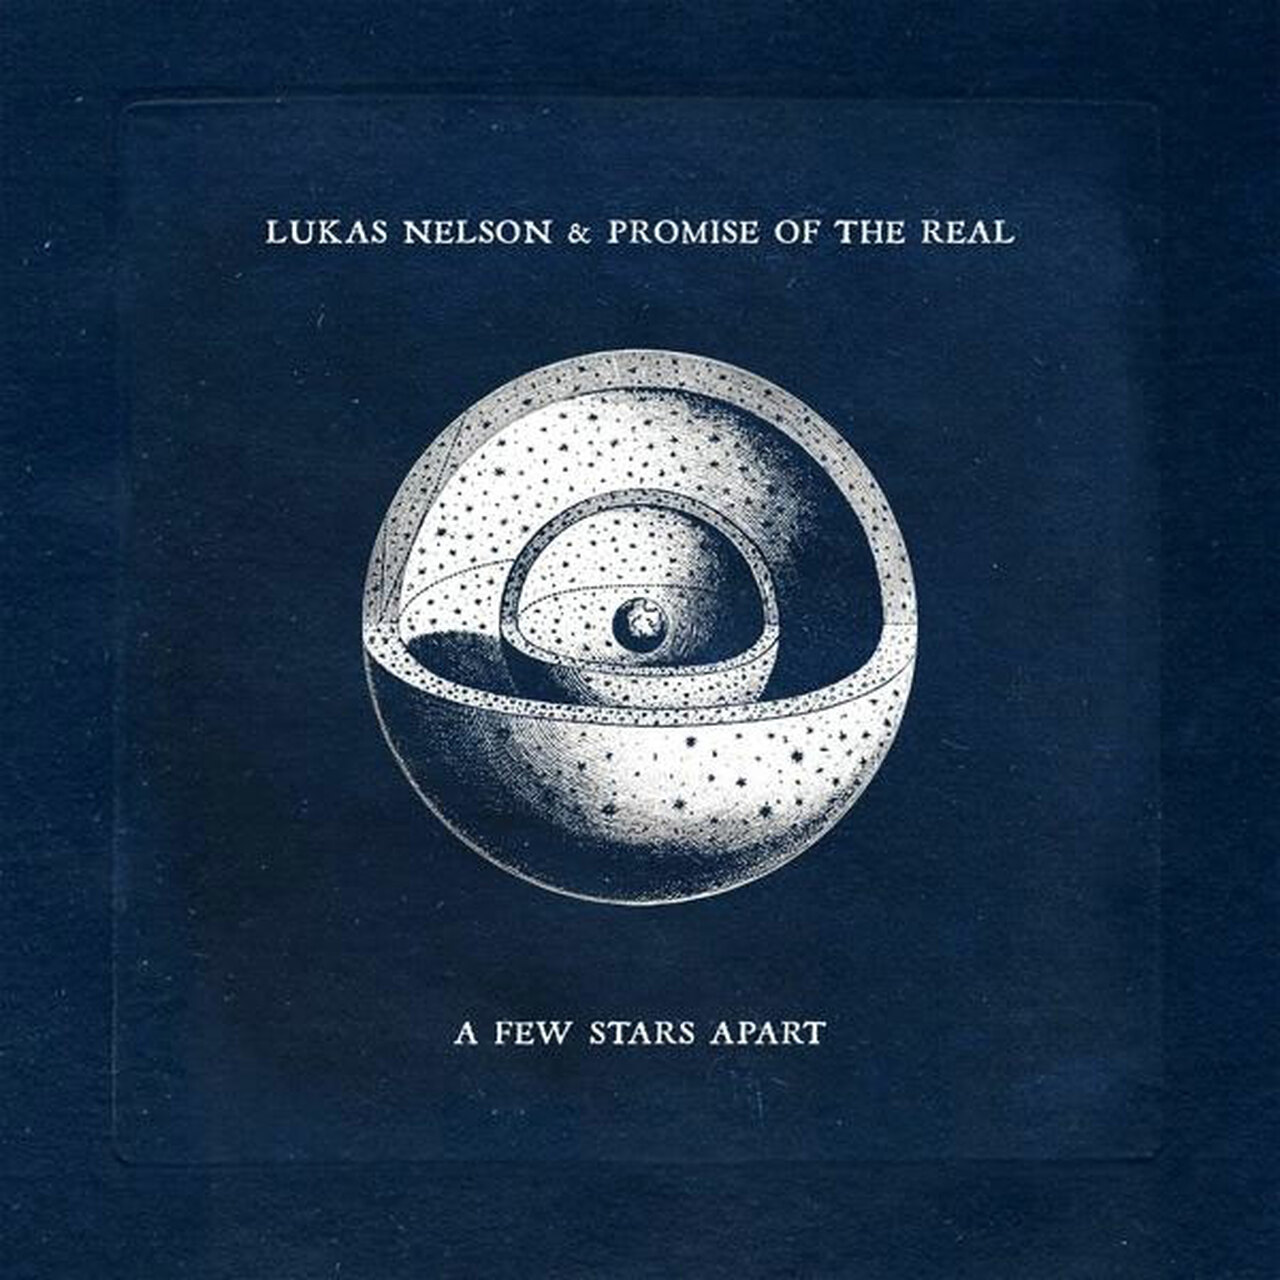 Lukas Nelson & Promise Of The Real - A Few Stars Apart [LP]